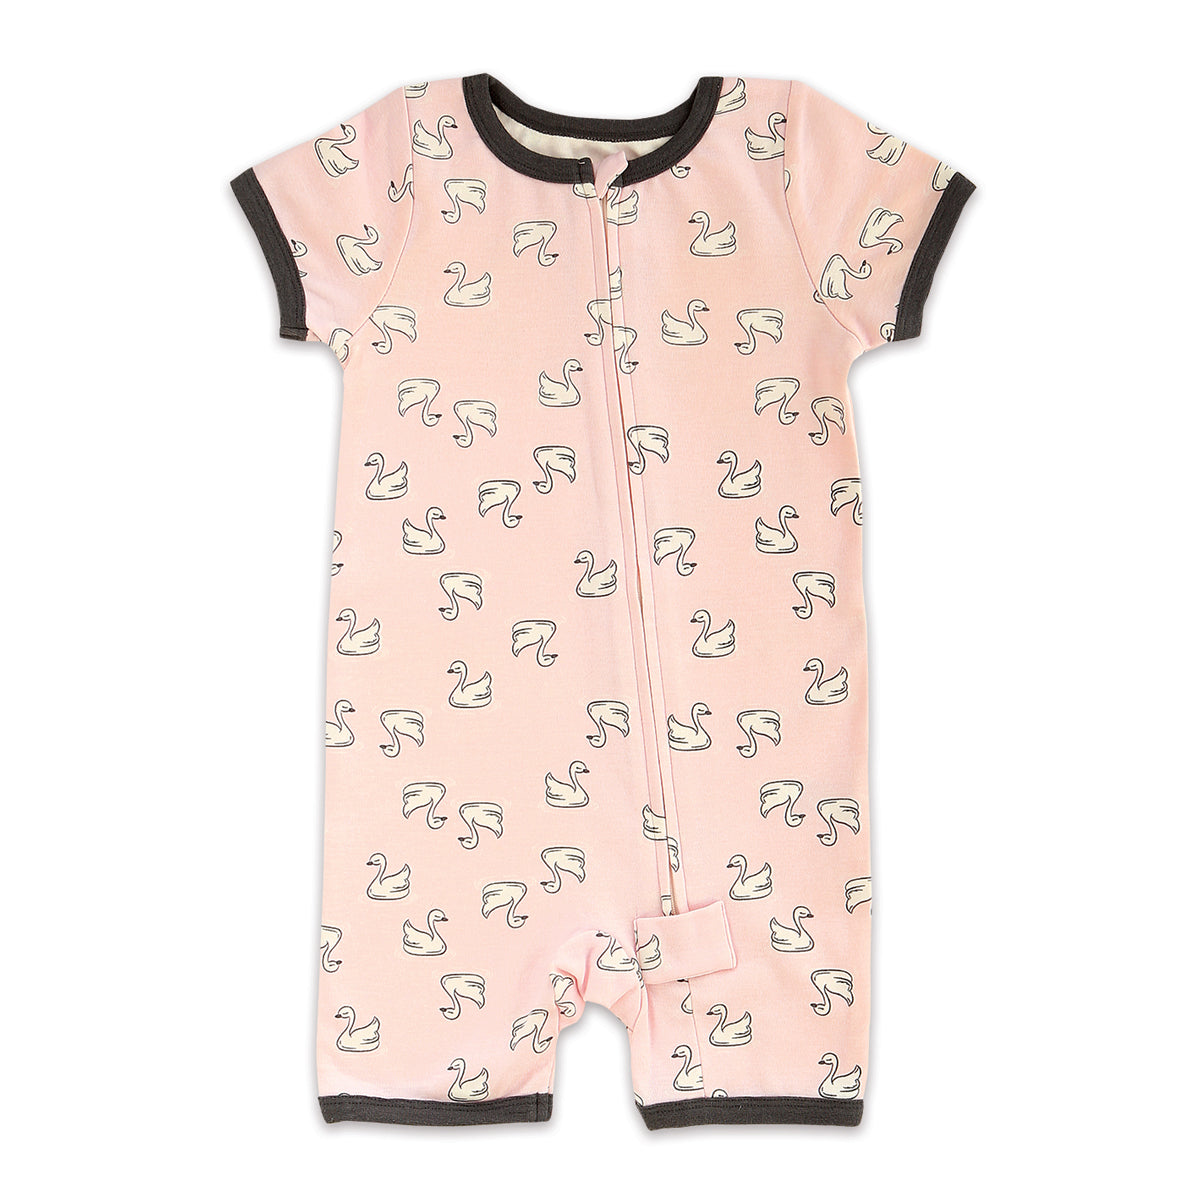 Organic Cotton Short Sleeve Romper w/Zipper (Little Swan Print)